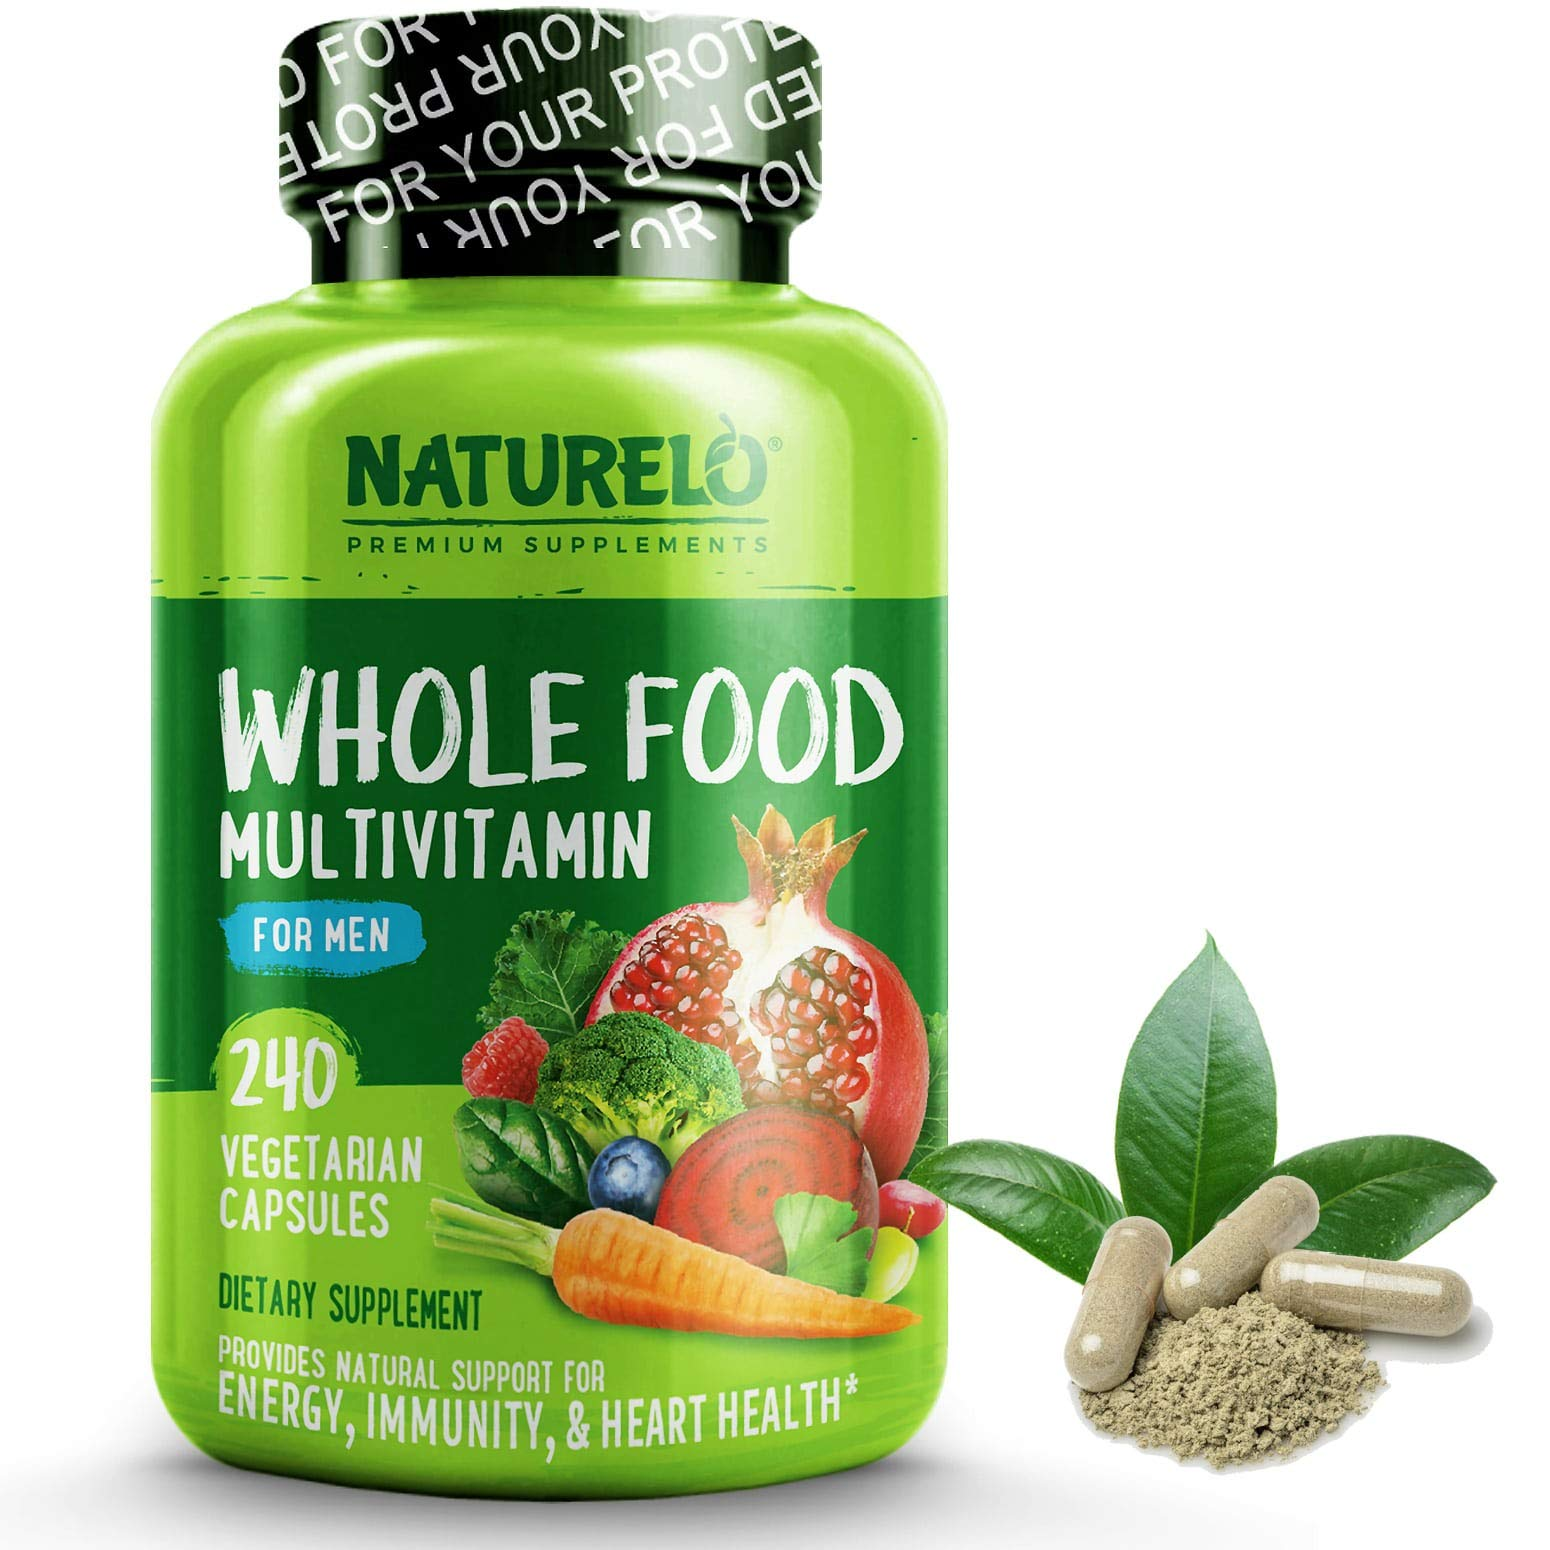 NATURELO Whole Food Multivitamin for Men - Vitamins, Minerals, Antioxidants, Organic Extracts - Vegetarian - for Energy, Brain, Heart, Eye Health - 240 Vegan Capsules